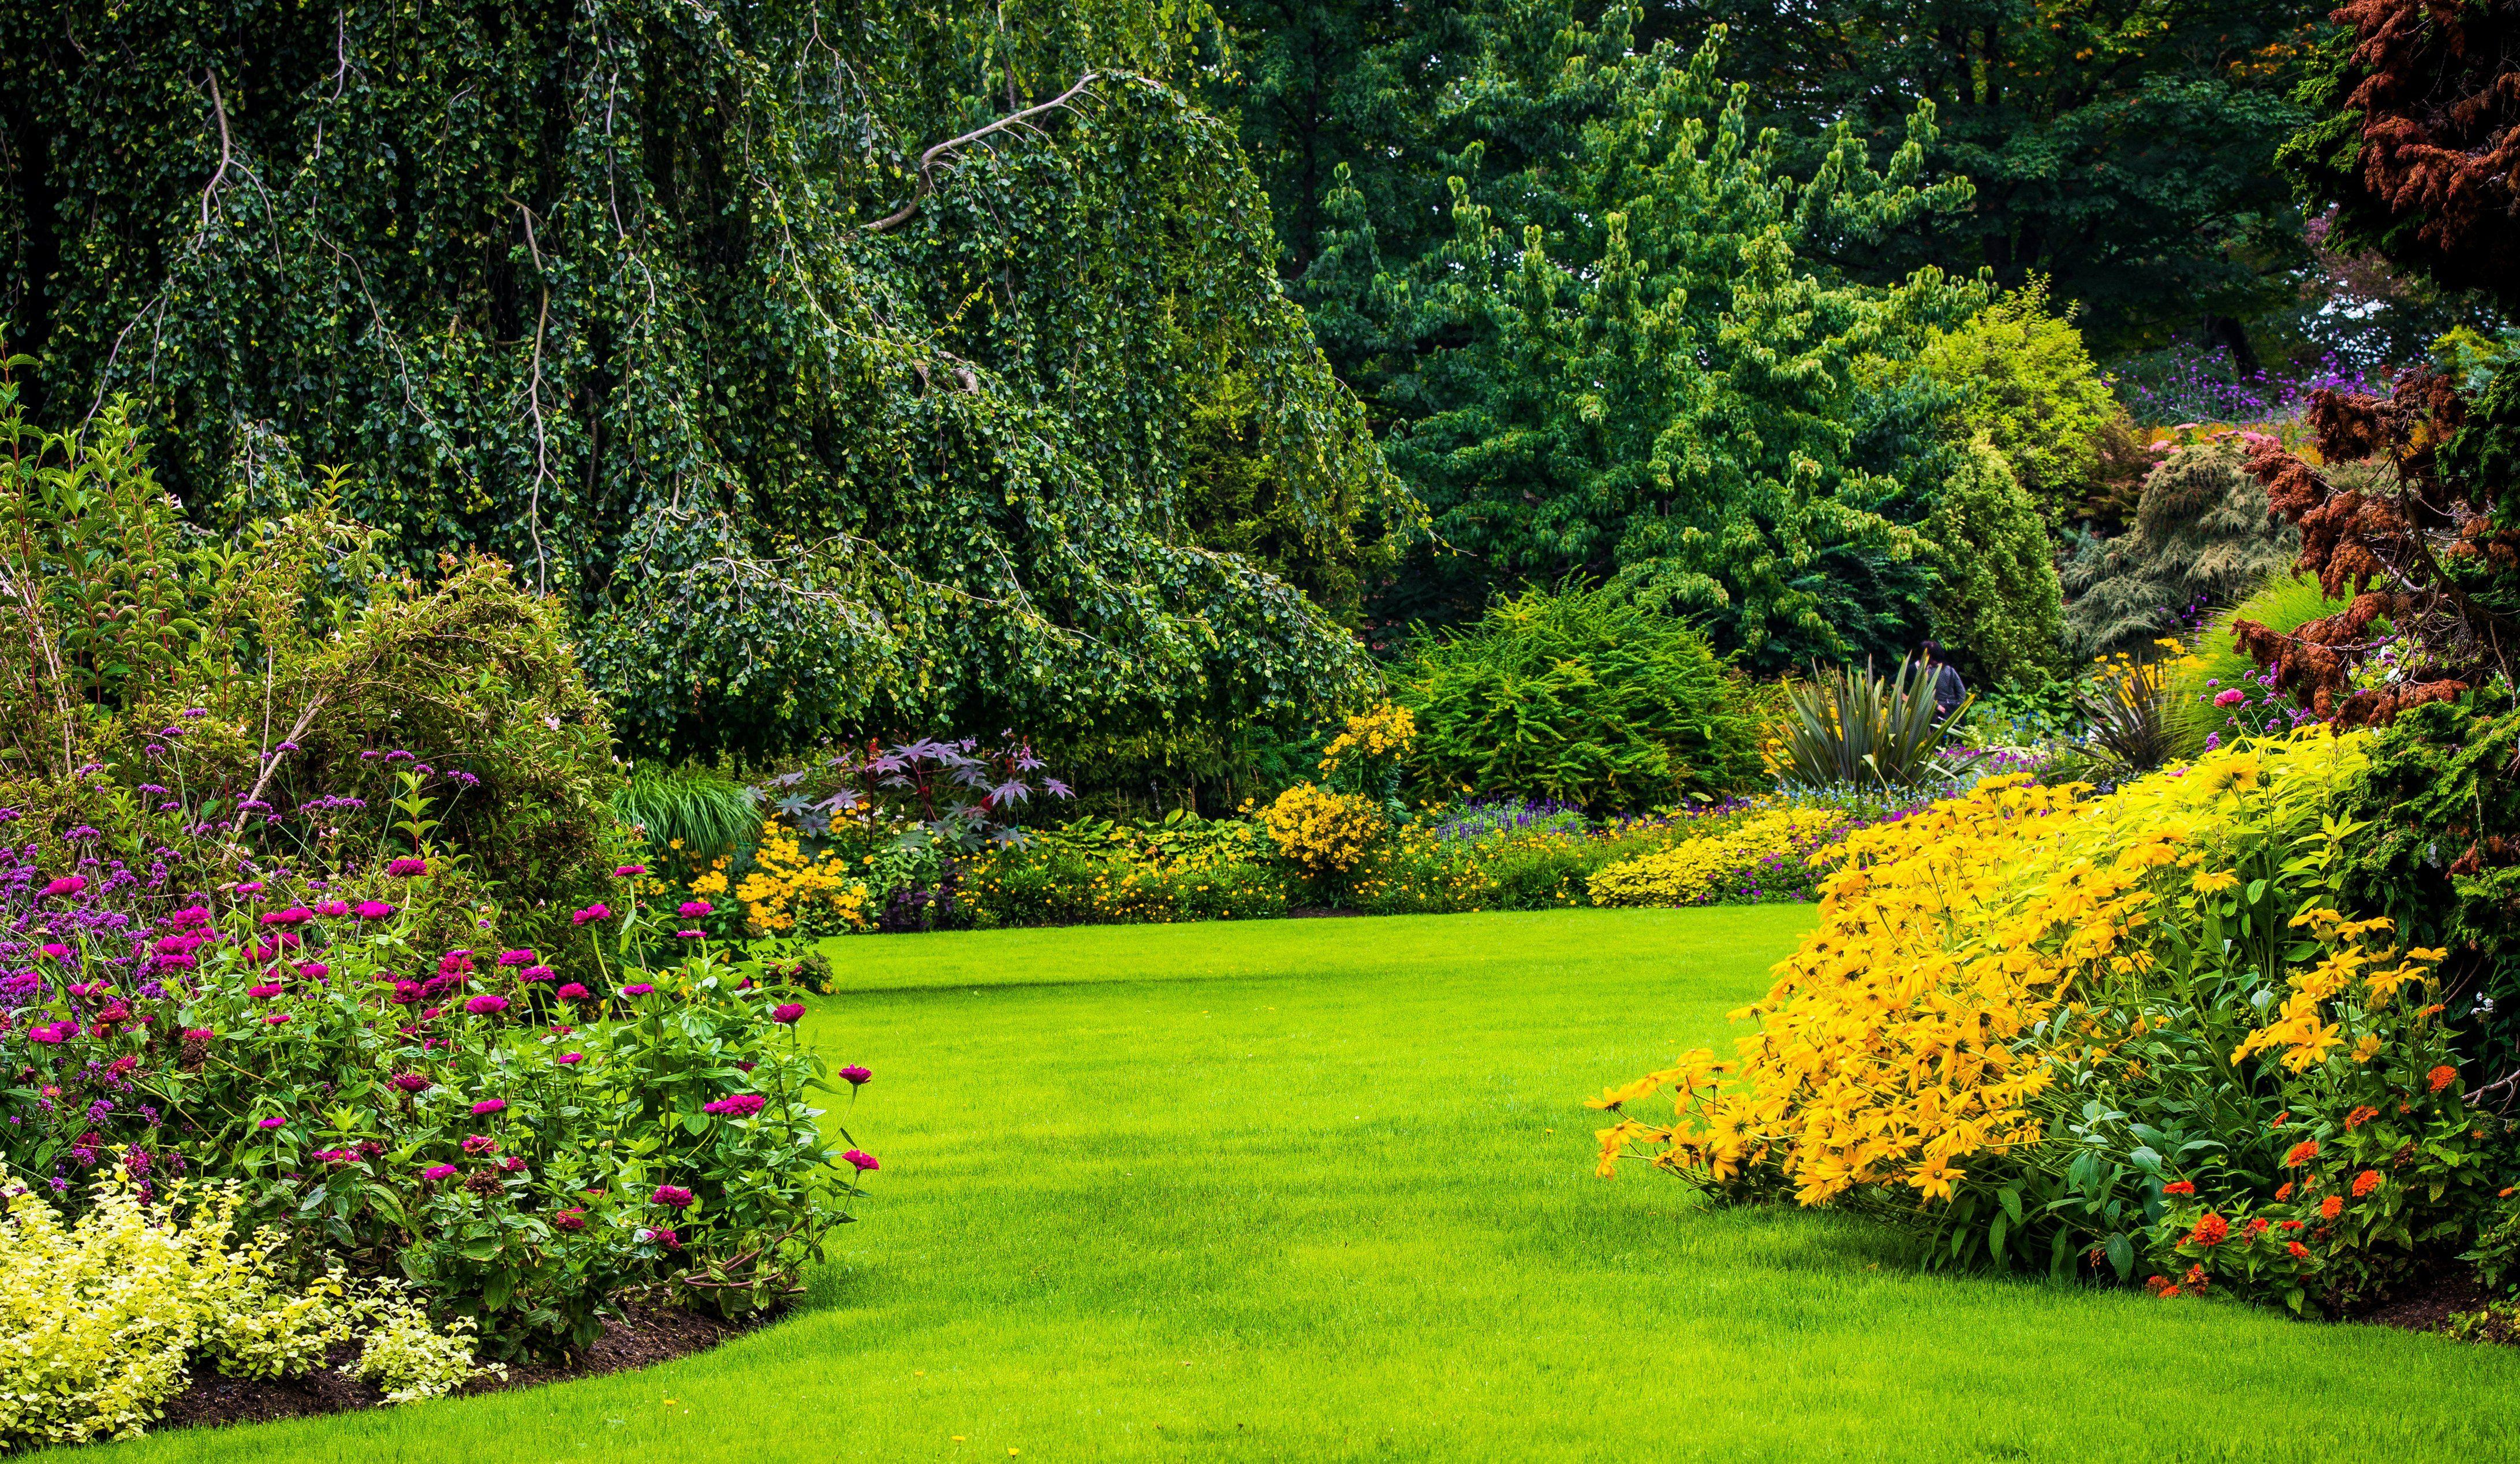 garden hd gardens flower nature backgrounds wallpapers digital vancouver canada lawn flowers trees background natural queen elizabeth plants shrubs spring